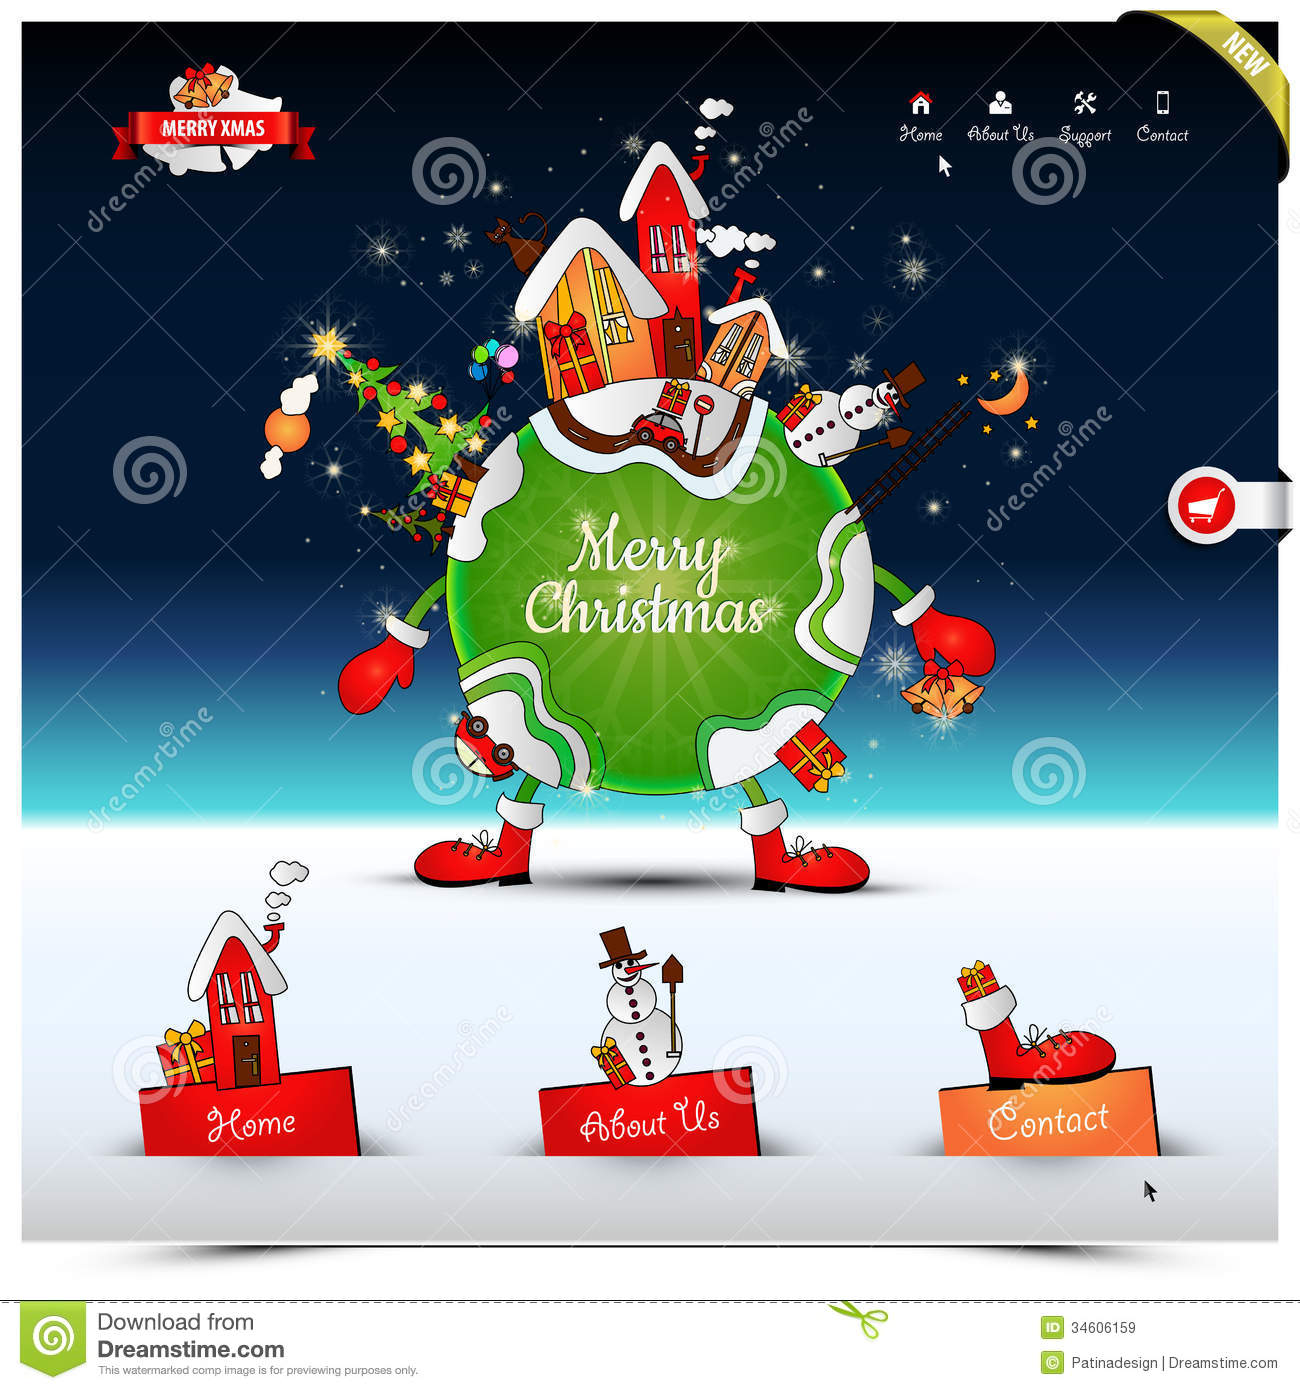 Christmas Night Website Template Royalty Free Stock Images